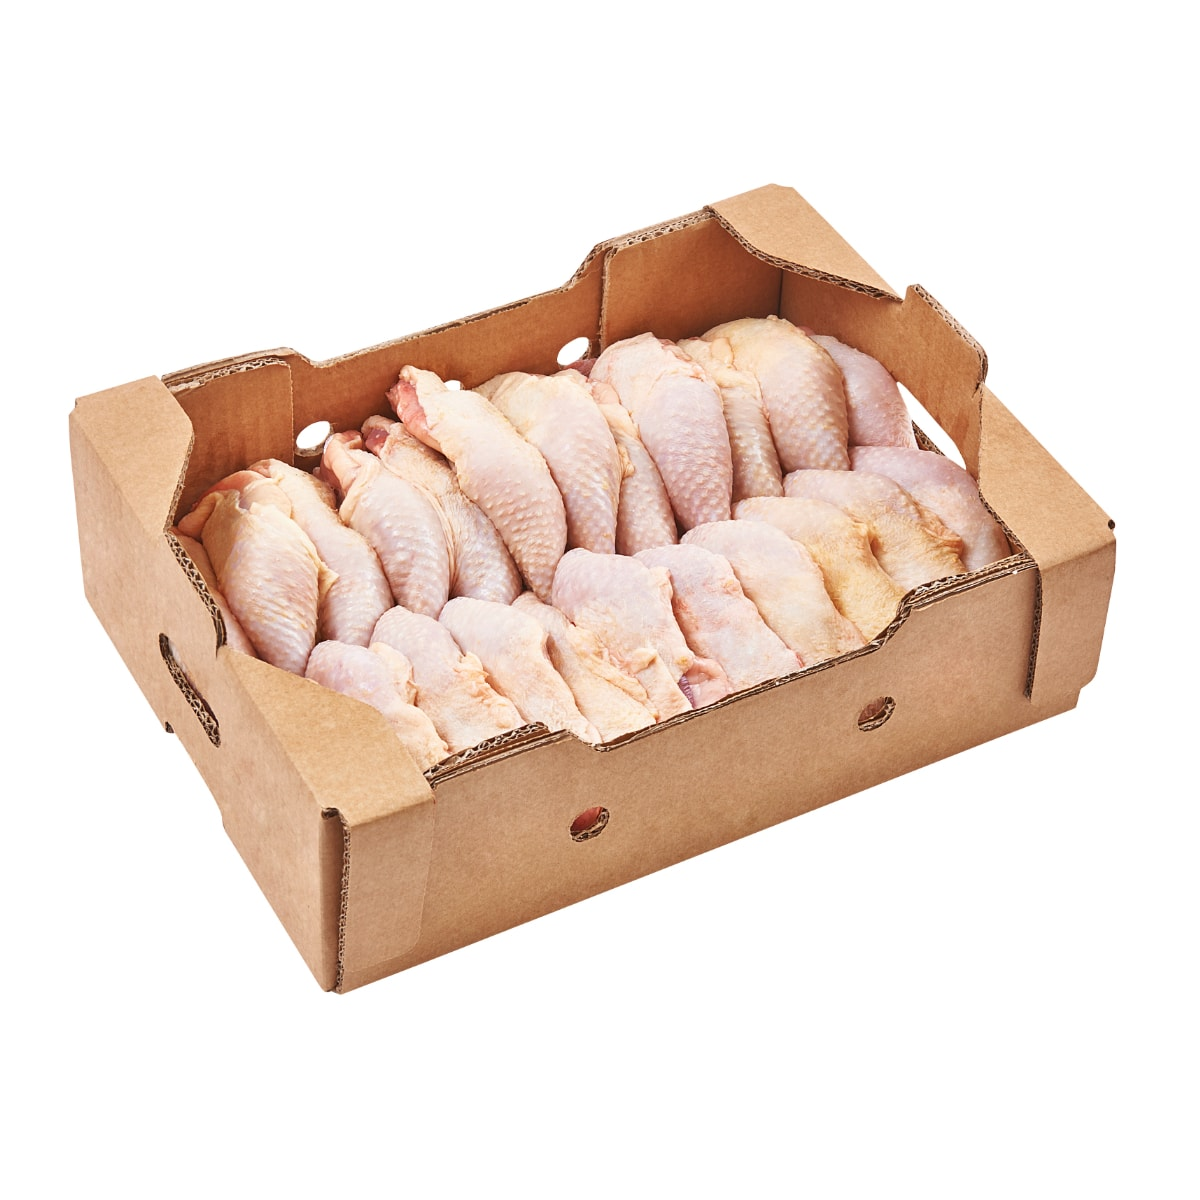 Poultry Boxes